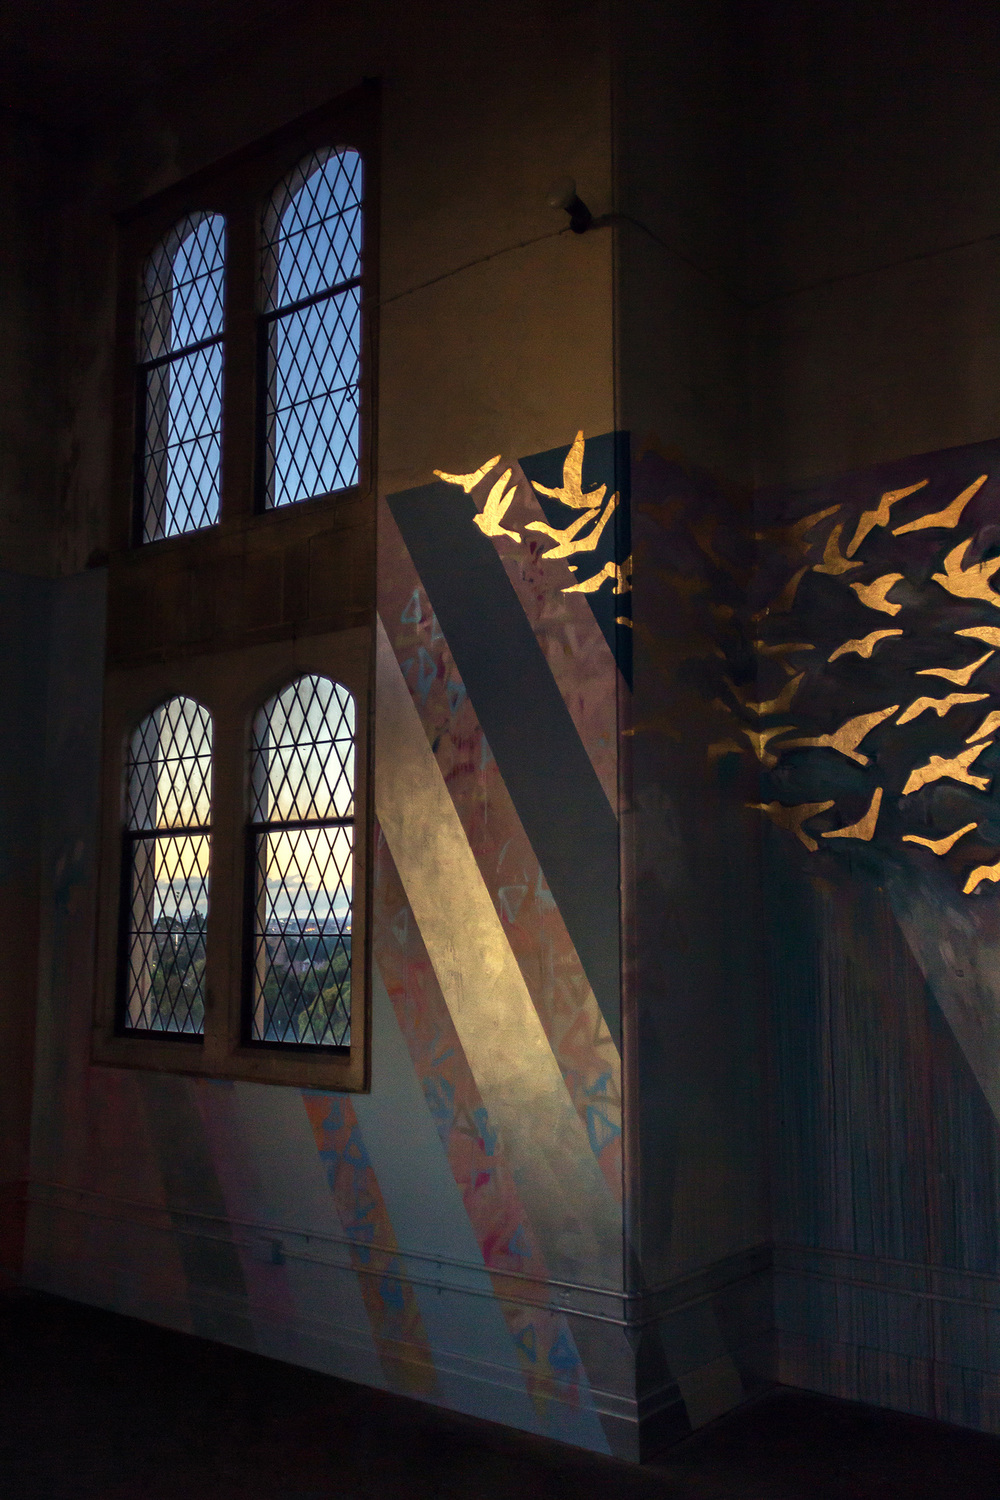 Majestic, religious church like interior, part of a large scale abstract mural, gold leaf birds fly out the window while sunlight projects glowing light onto the wall.